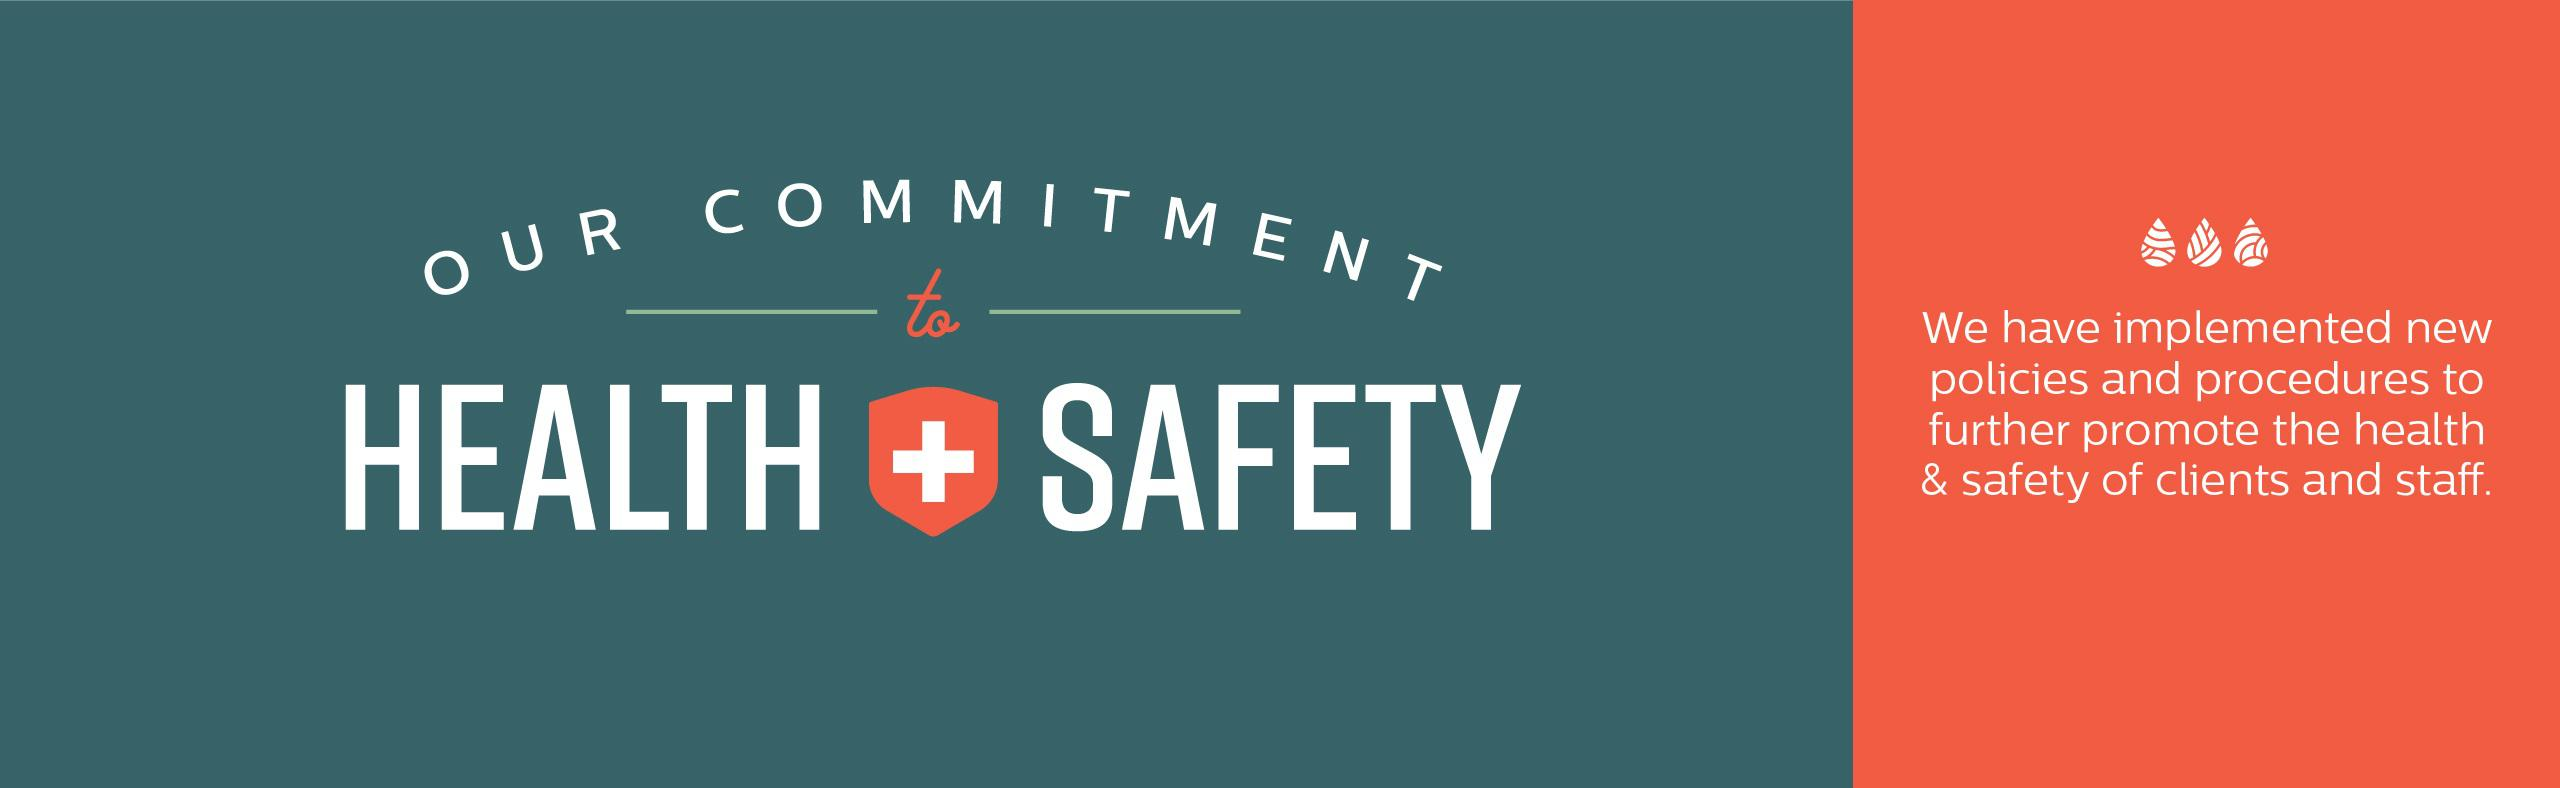 As our nationwide studios begin reopening over the next several weeks, we wanted to share with you the new safety protocols we're implementing. Ensuring the safety of clients, our staff and community will continue to be a top priority as studios reopen.